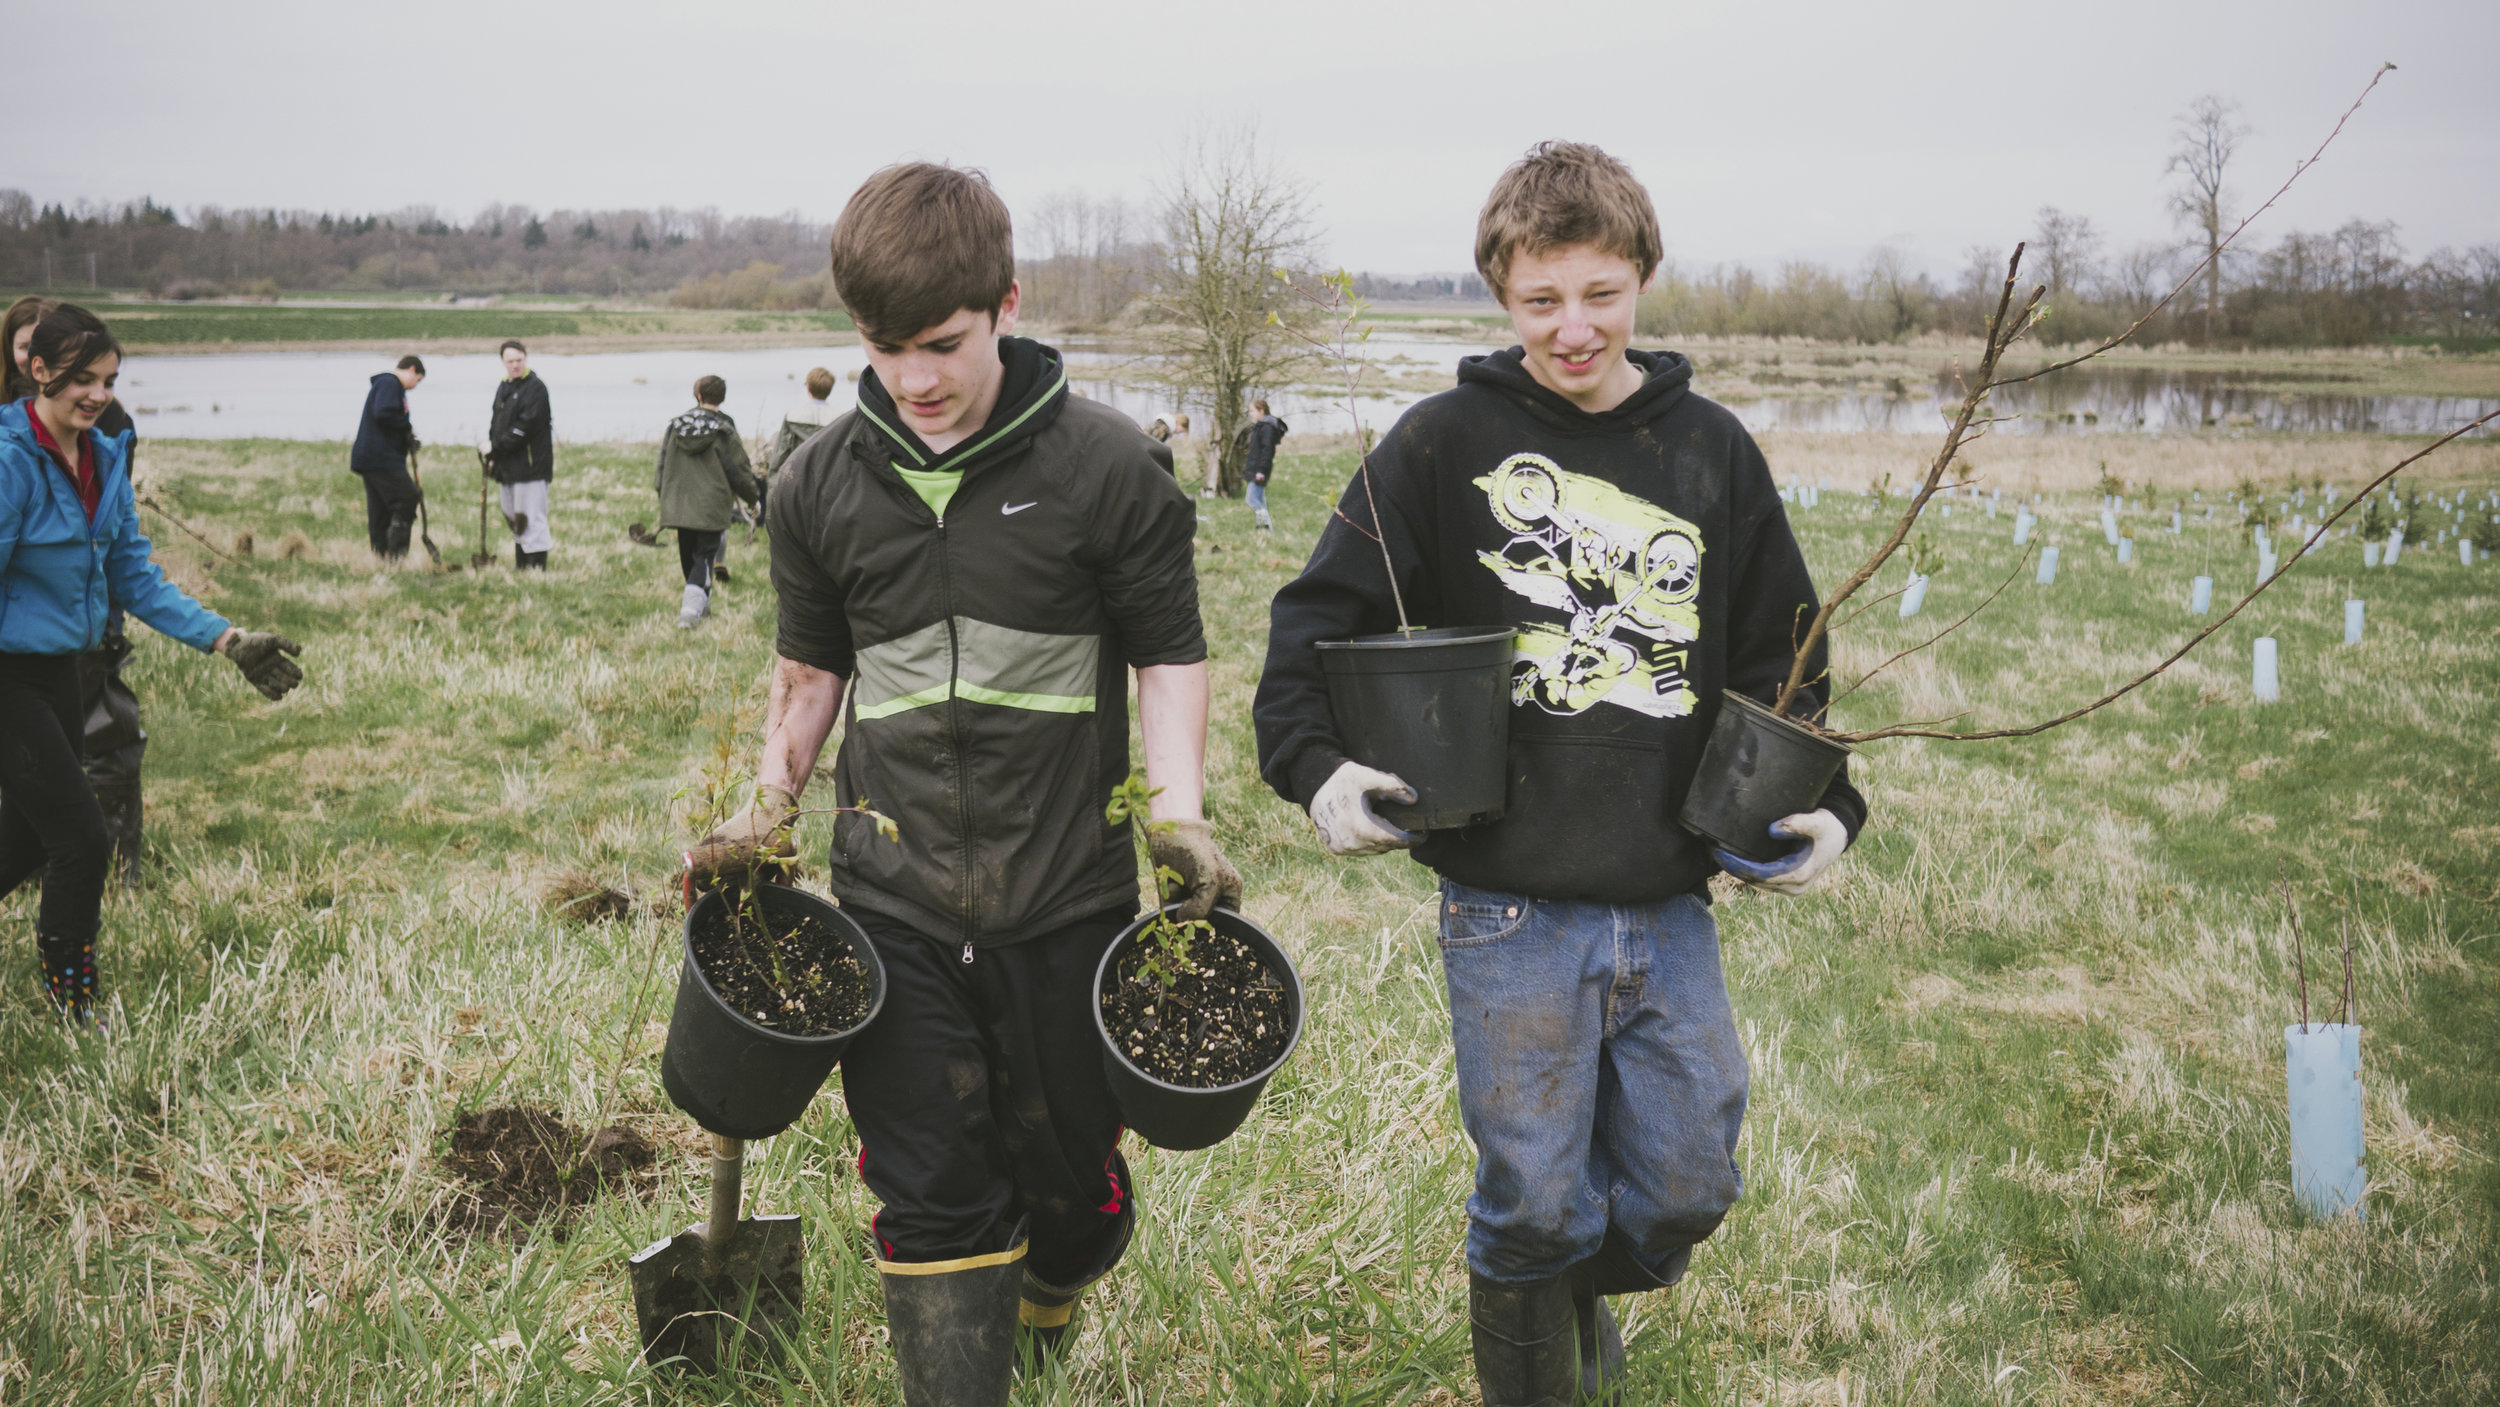 Students from Conway Middle School help restore trees at Fisher Slough.  Photo by Don Macanlalay / The Nature Conservancy.